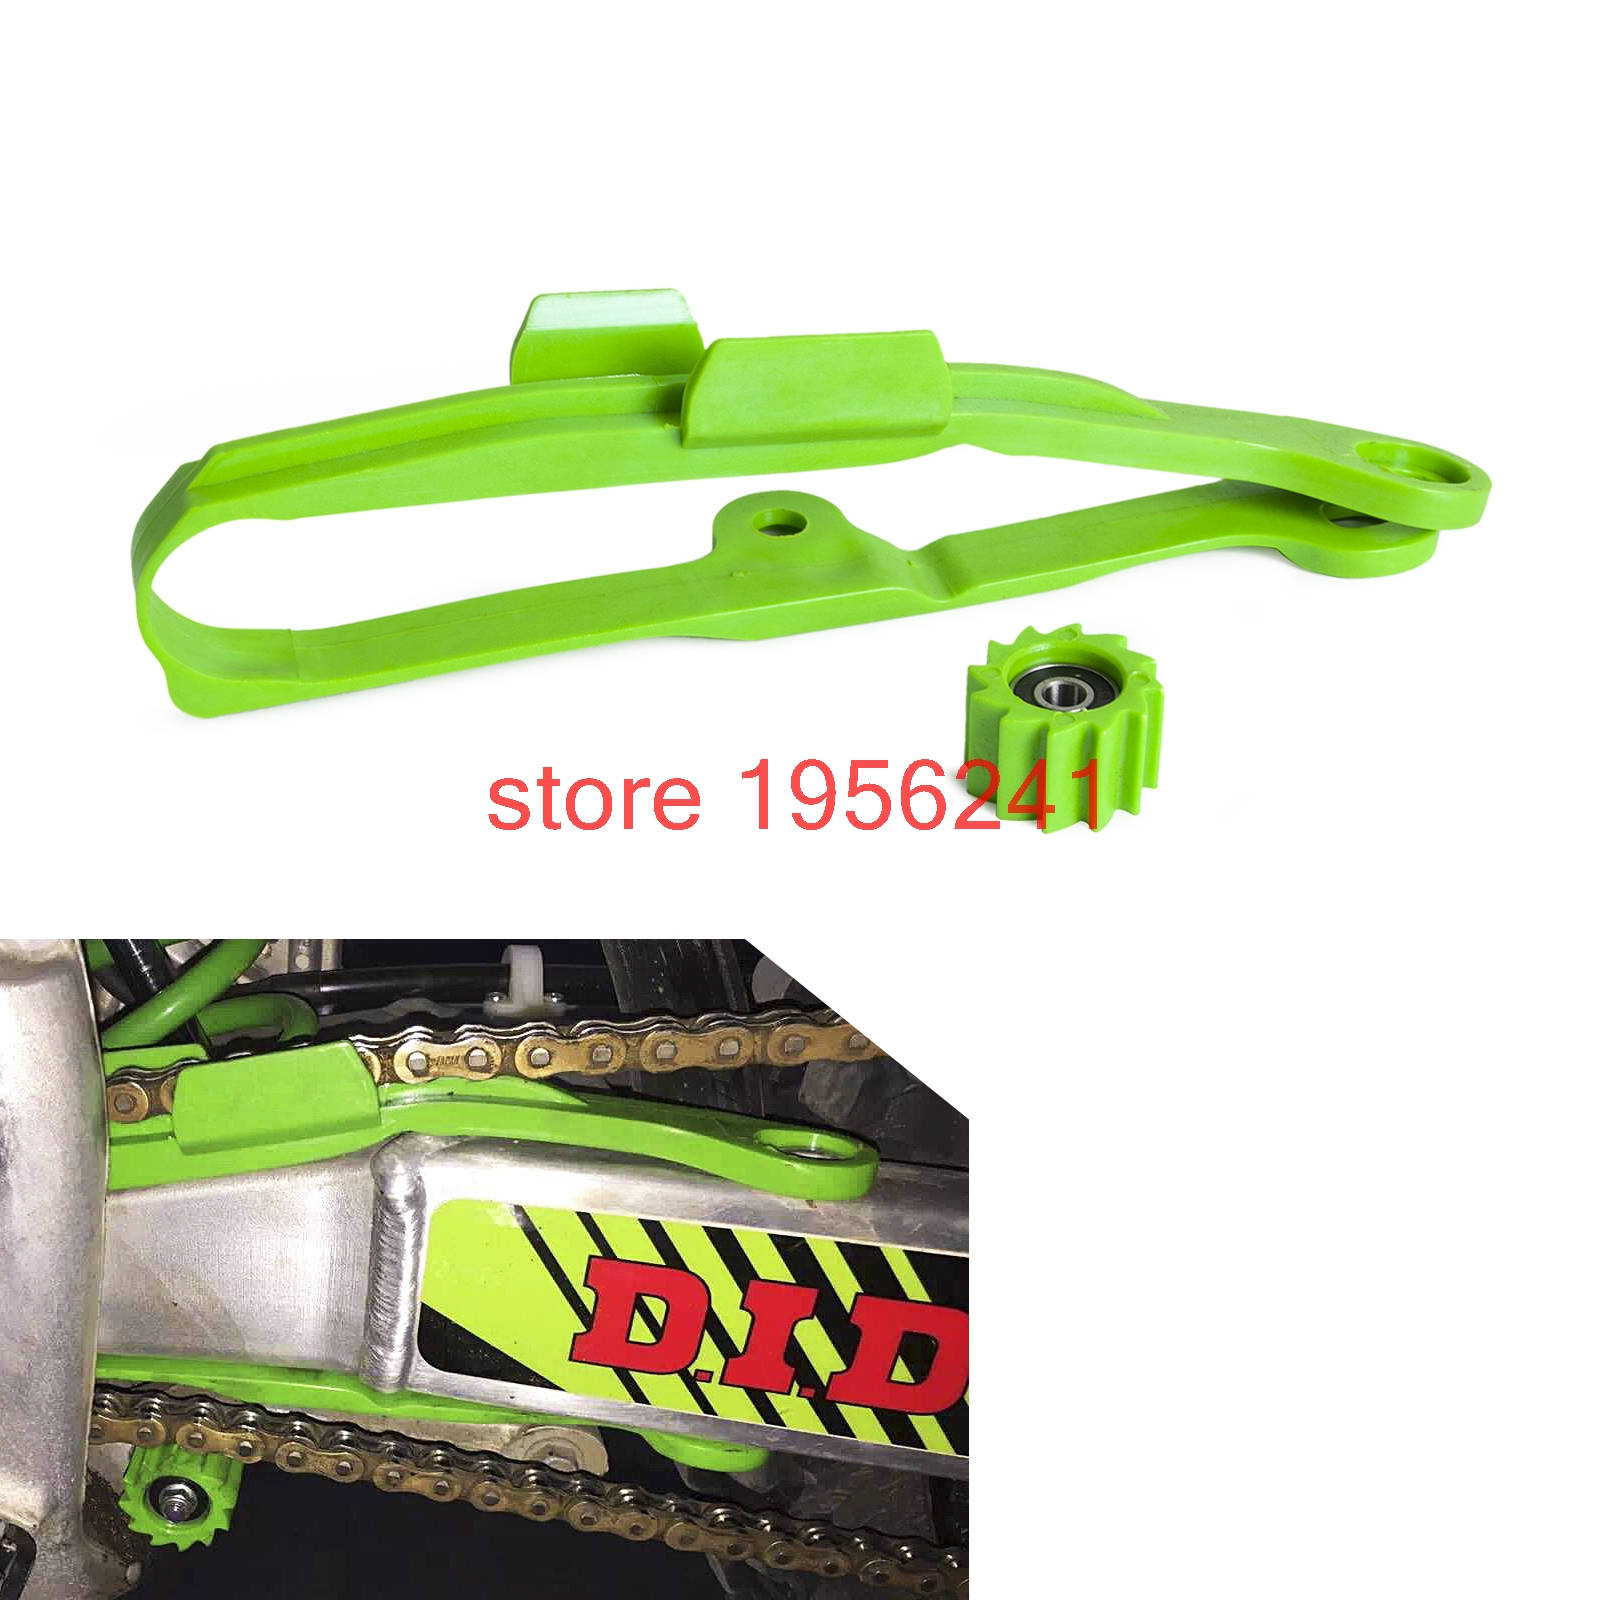 Chain Slider Guard Slider Kit for Kawasaki KX250F KX450F KXF250 KXF450 2006-2016 KXF 250 450